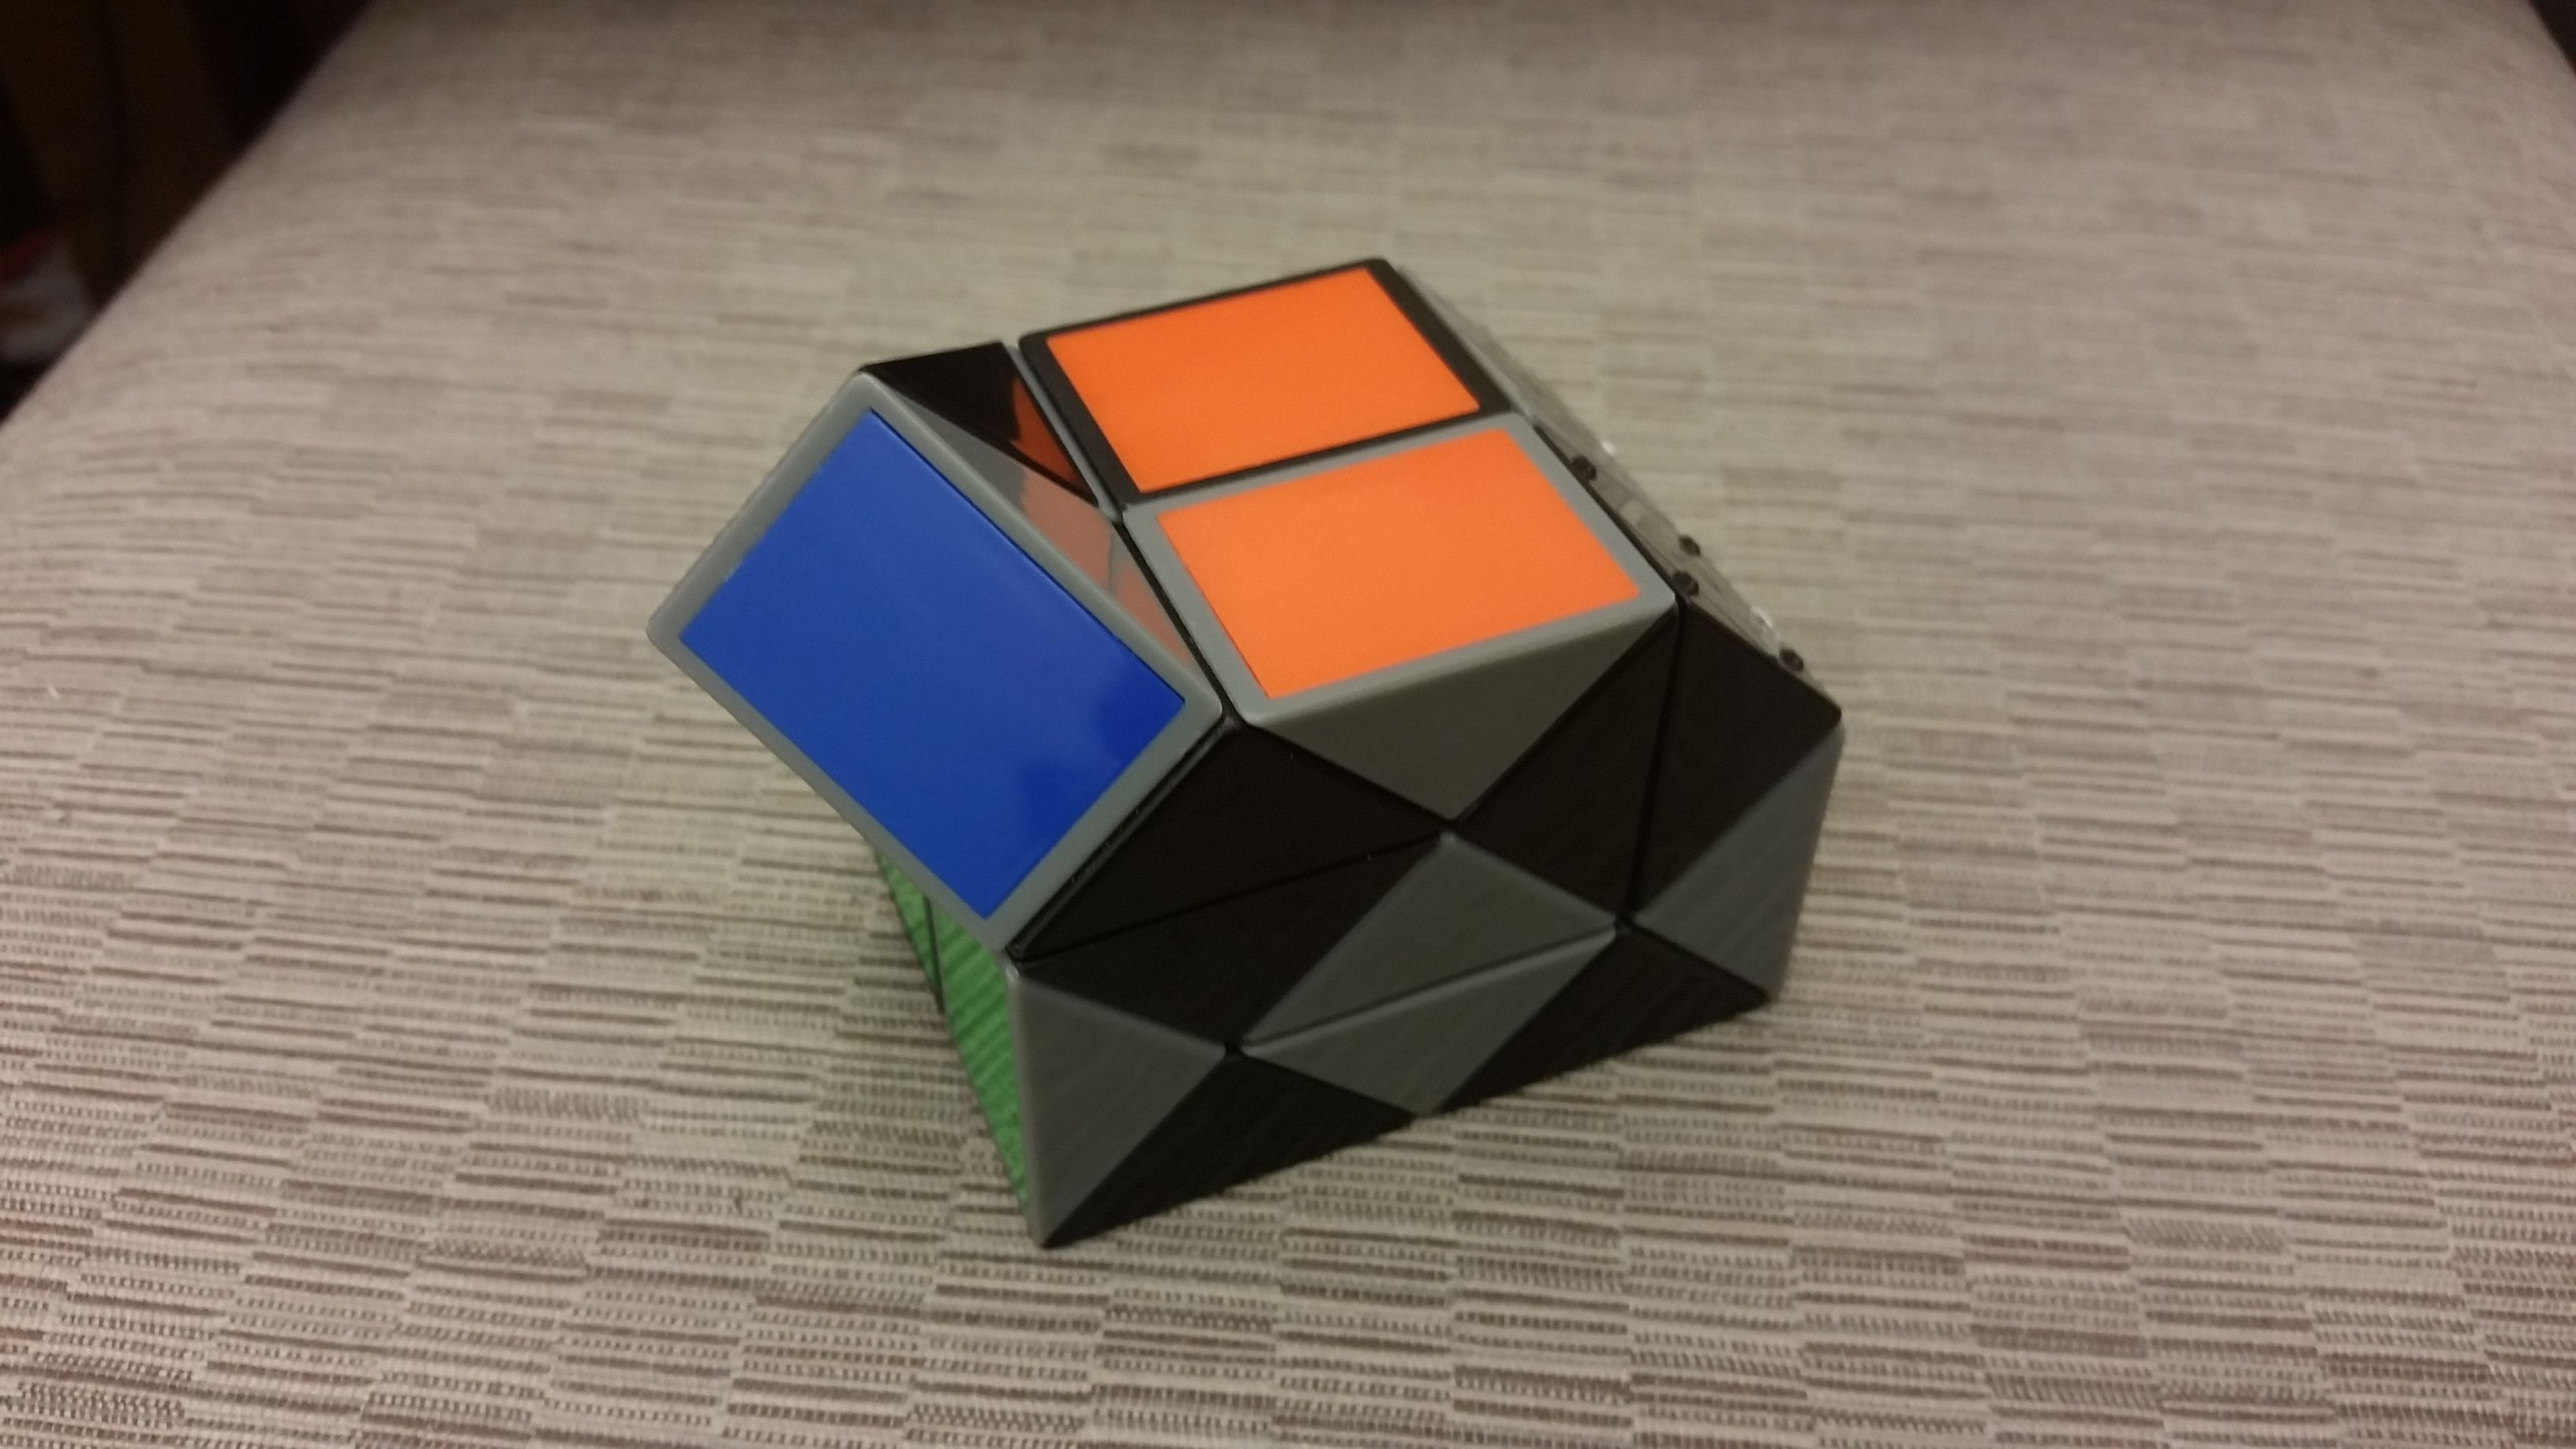 What Rubik S Twist Configuration Has The Lowest Visible Surface Triangular Prism Twist